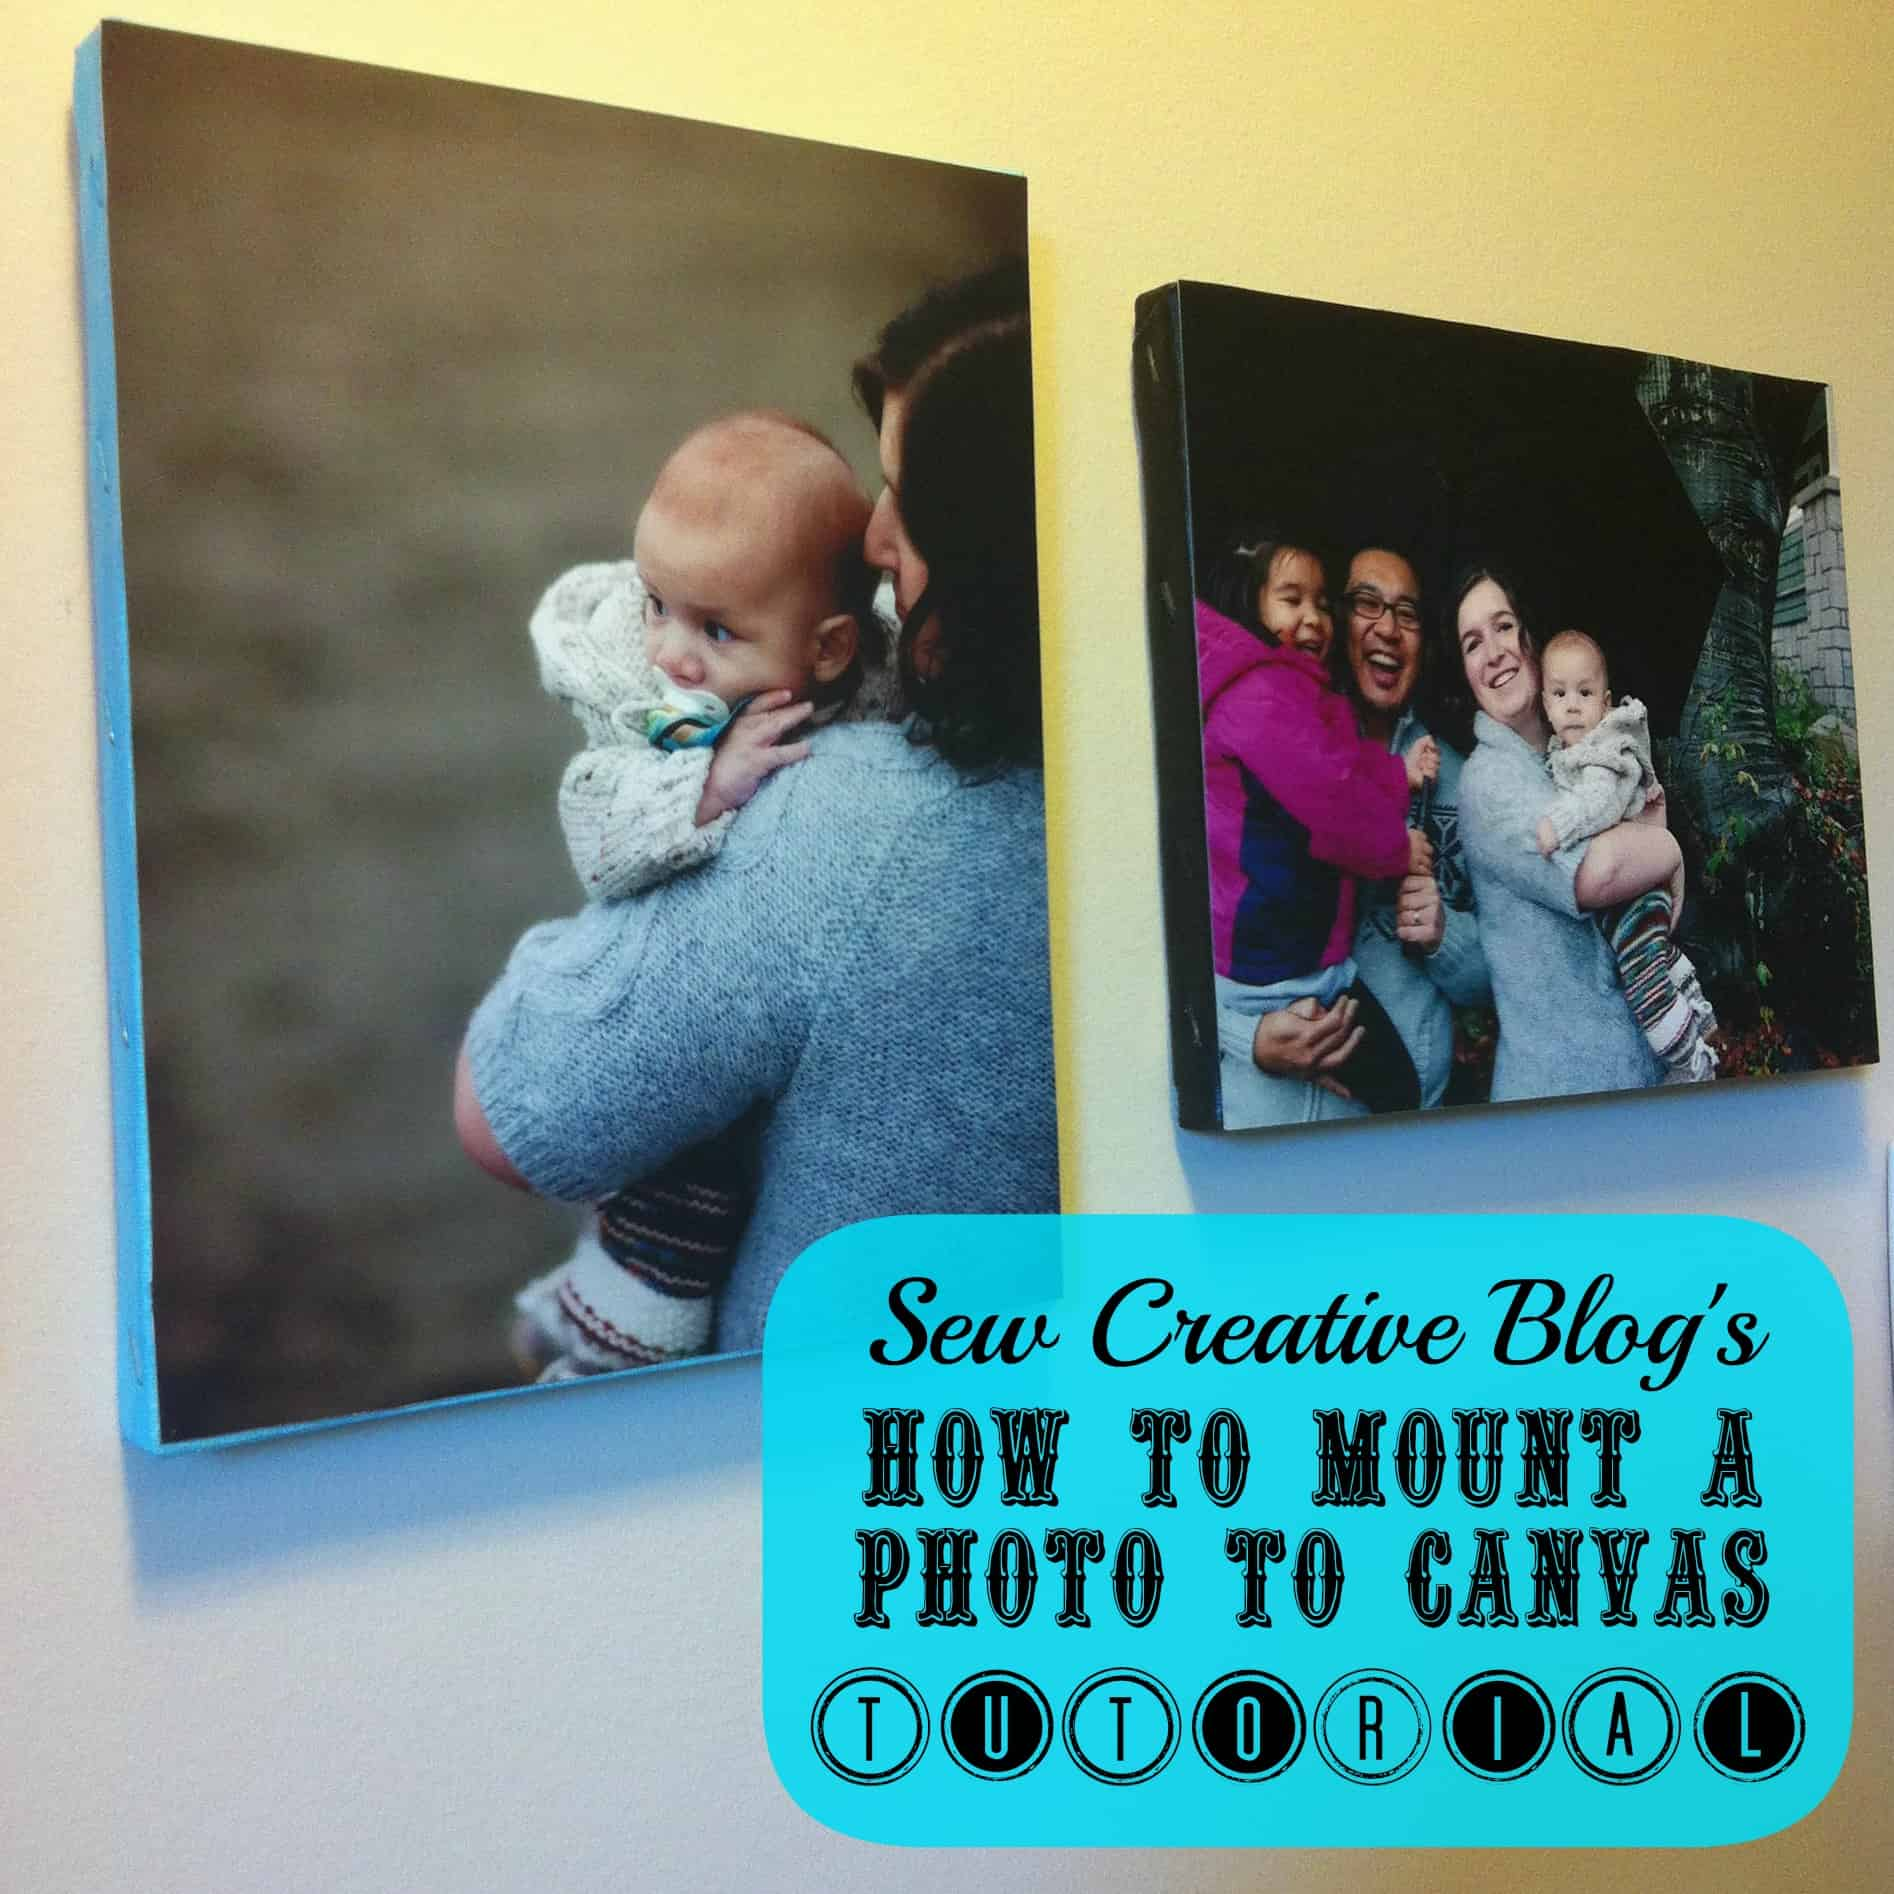 How-to-mount-a-photo-to-canvas-tutorial